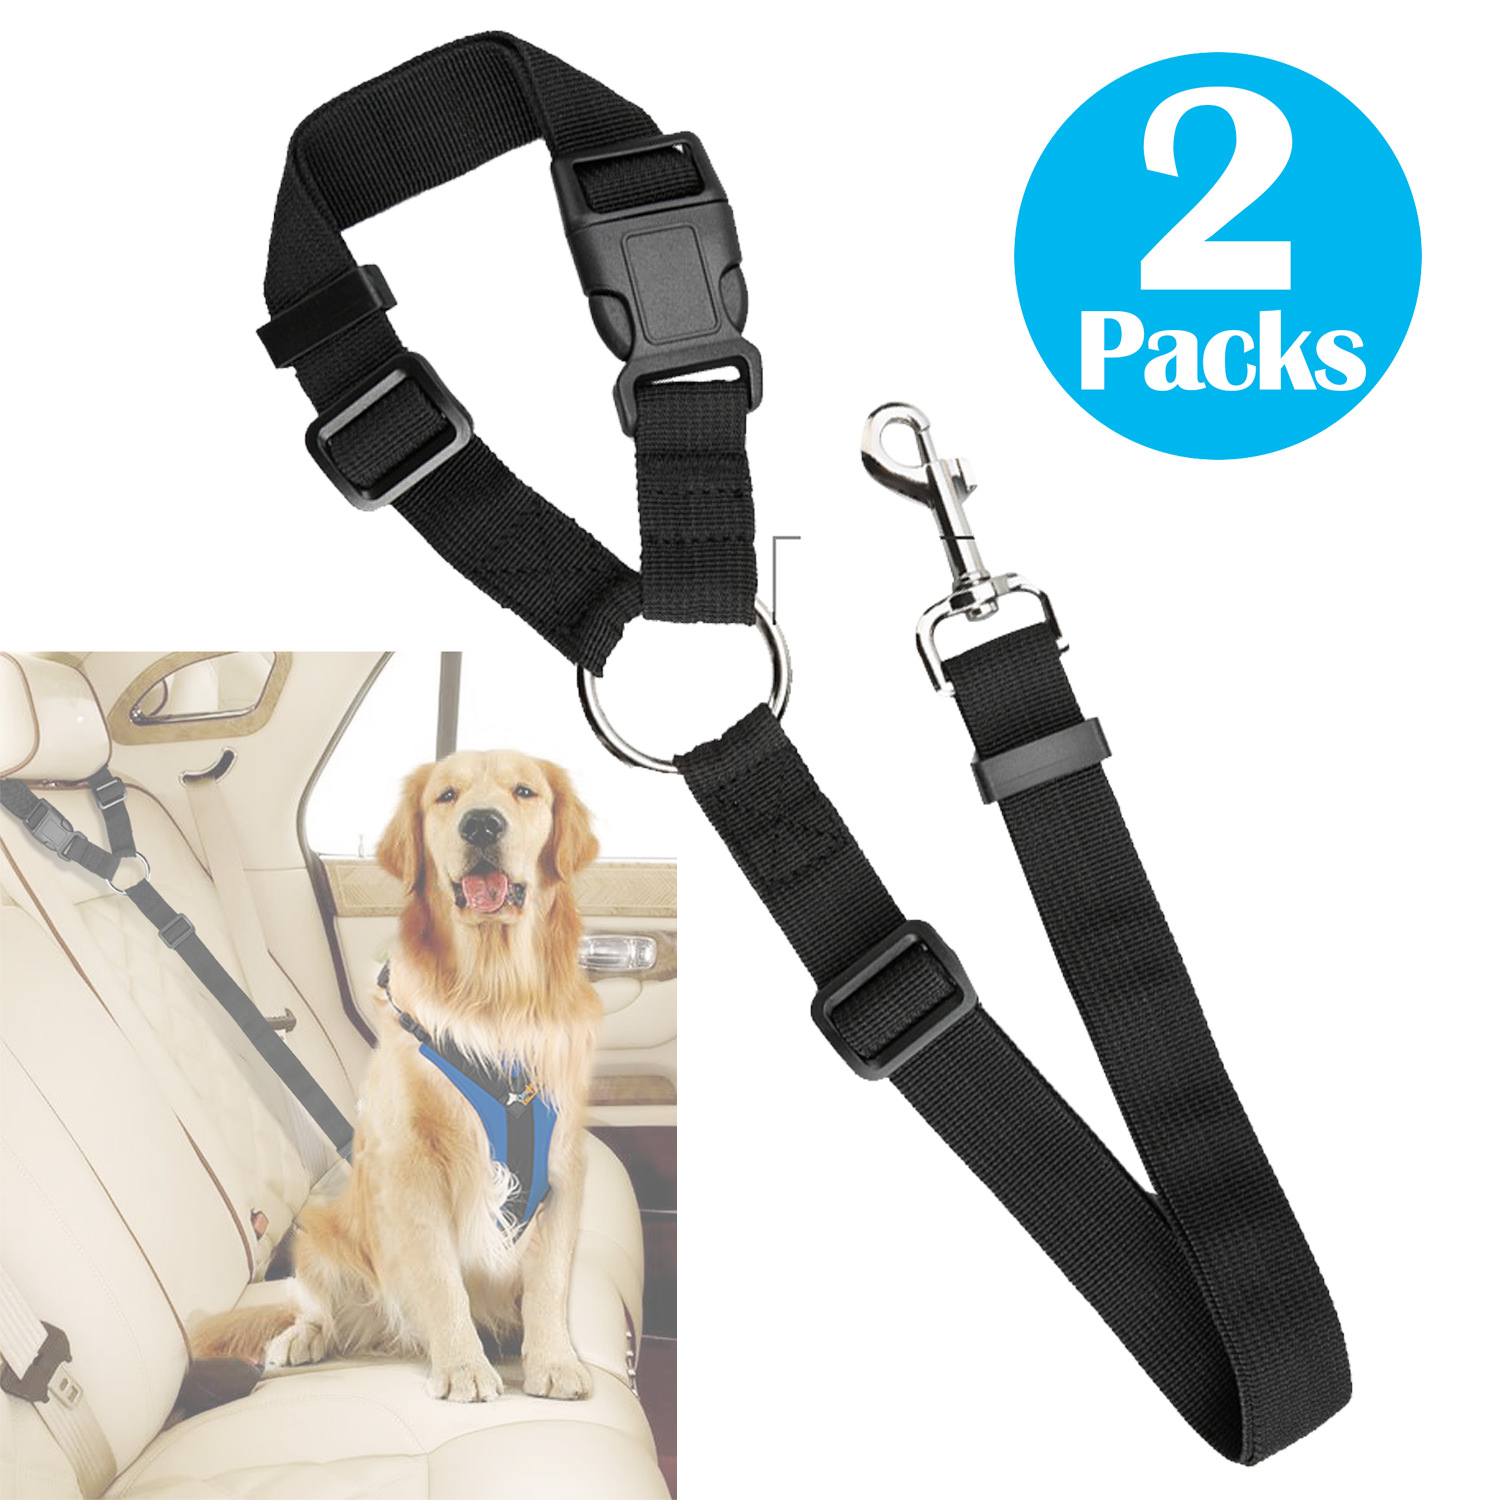 2Packs Adjustable Pet Leash Seat Belt Car Safety Lead for Dogs and Cats, Seatbelt Harness for all Vehicles